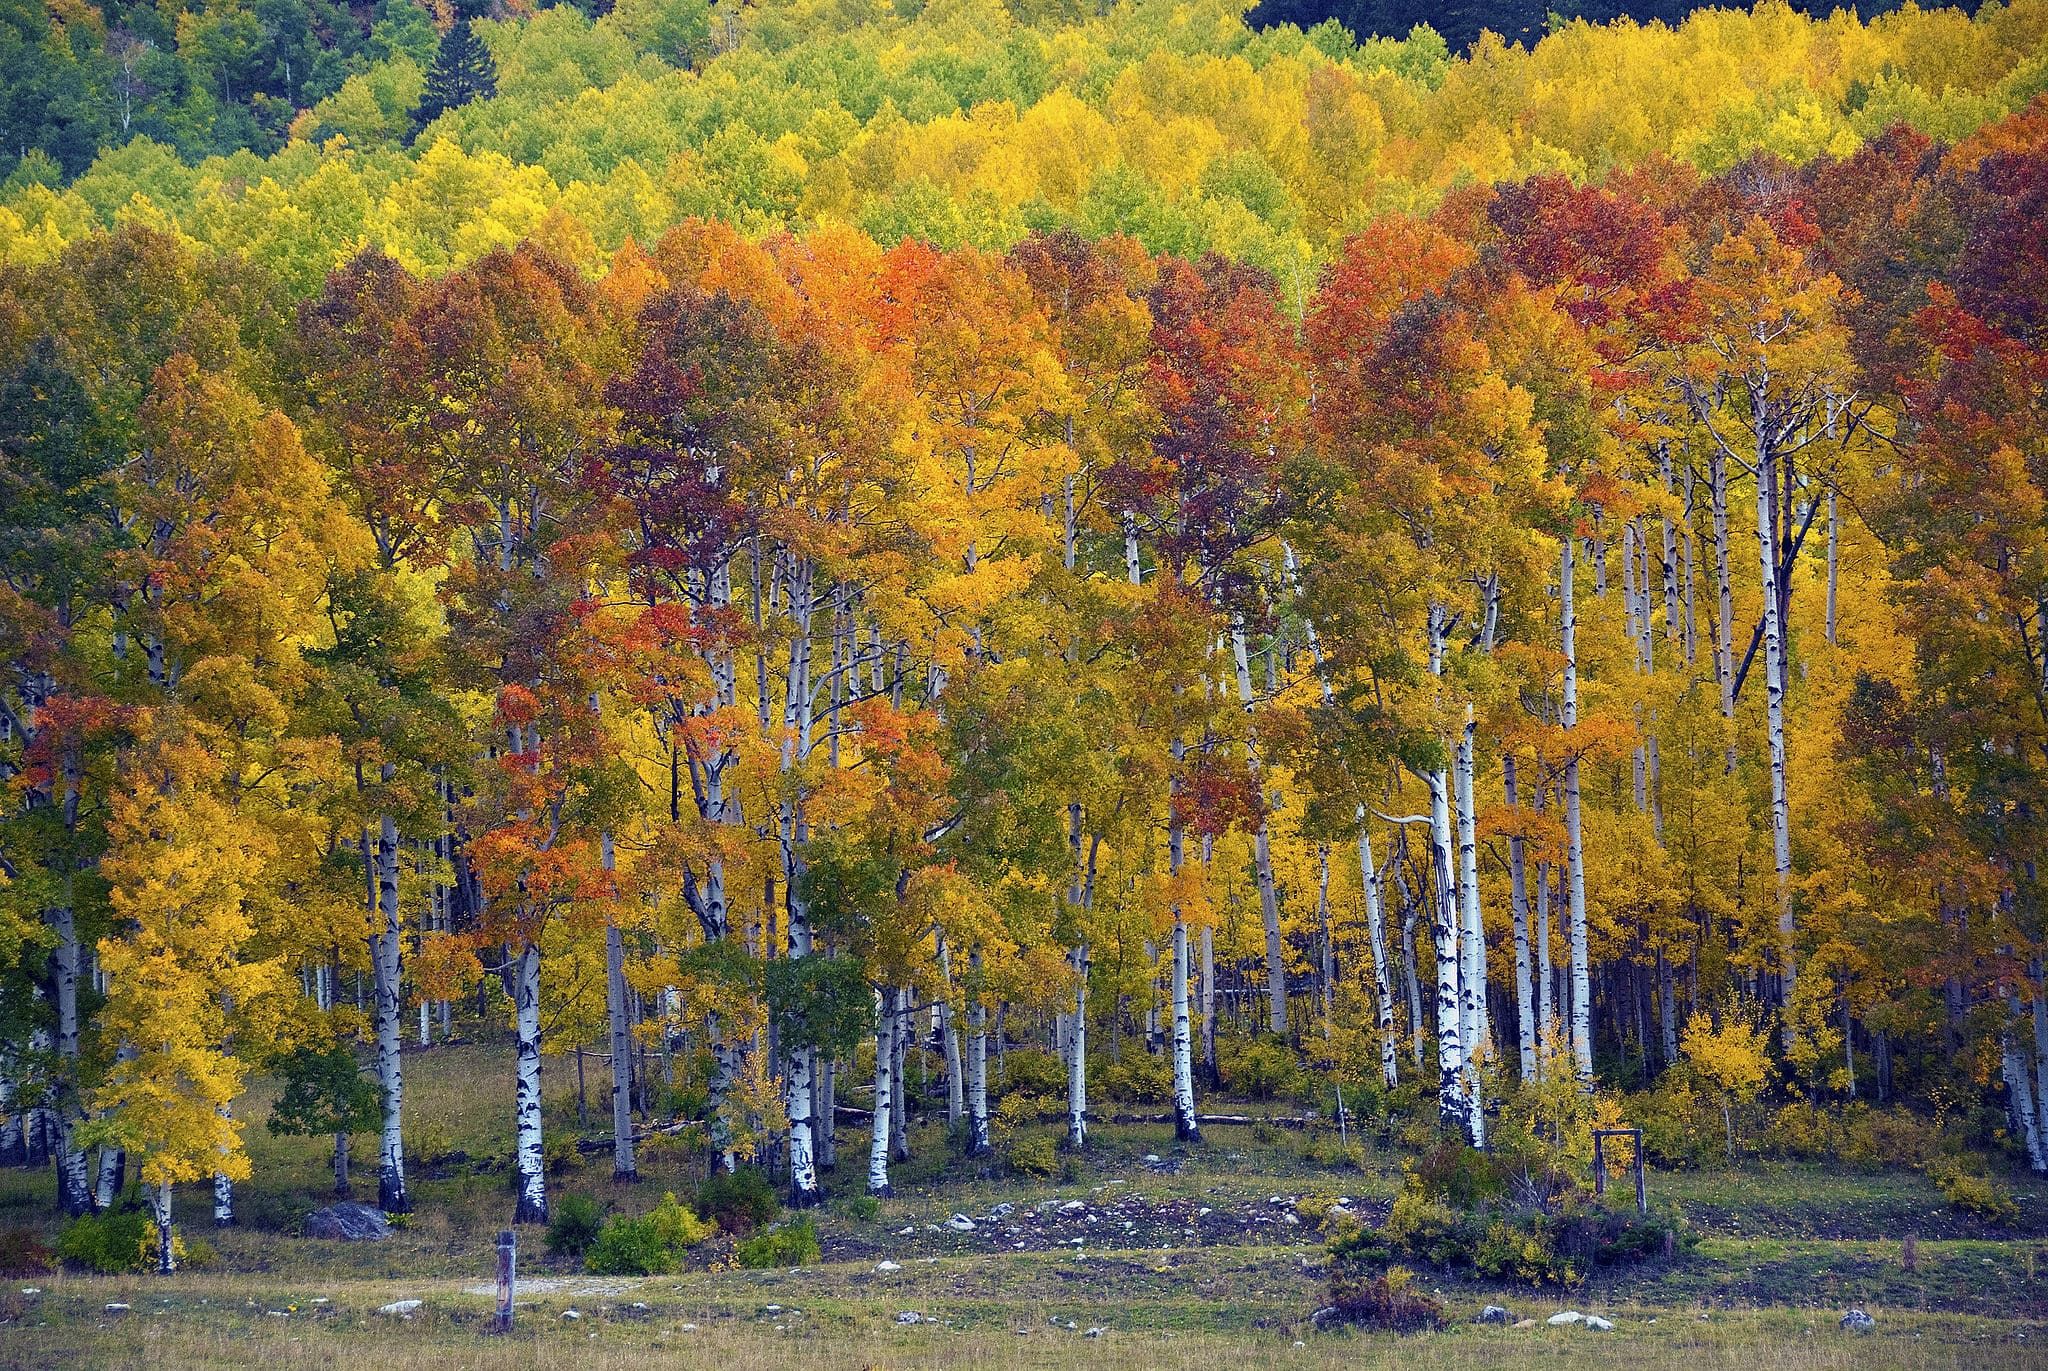 Fall colors in Durango // Experience vibrant fall Colorado foliage with this road trip itinerary that takes you through some of the best aspen groves in the state.